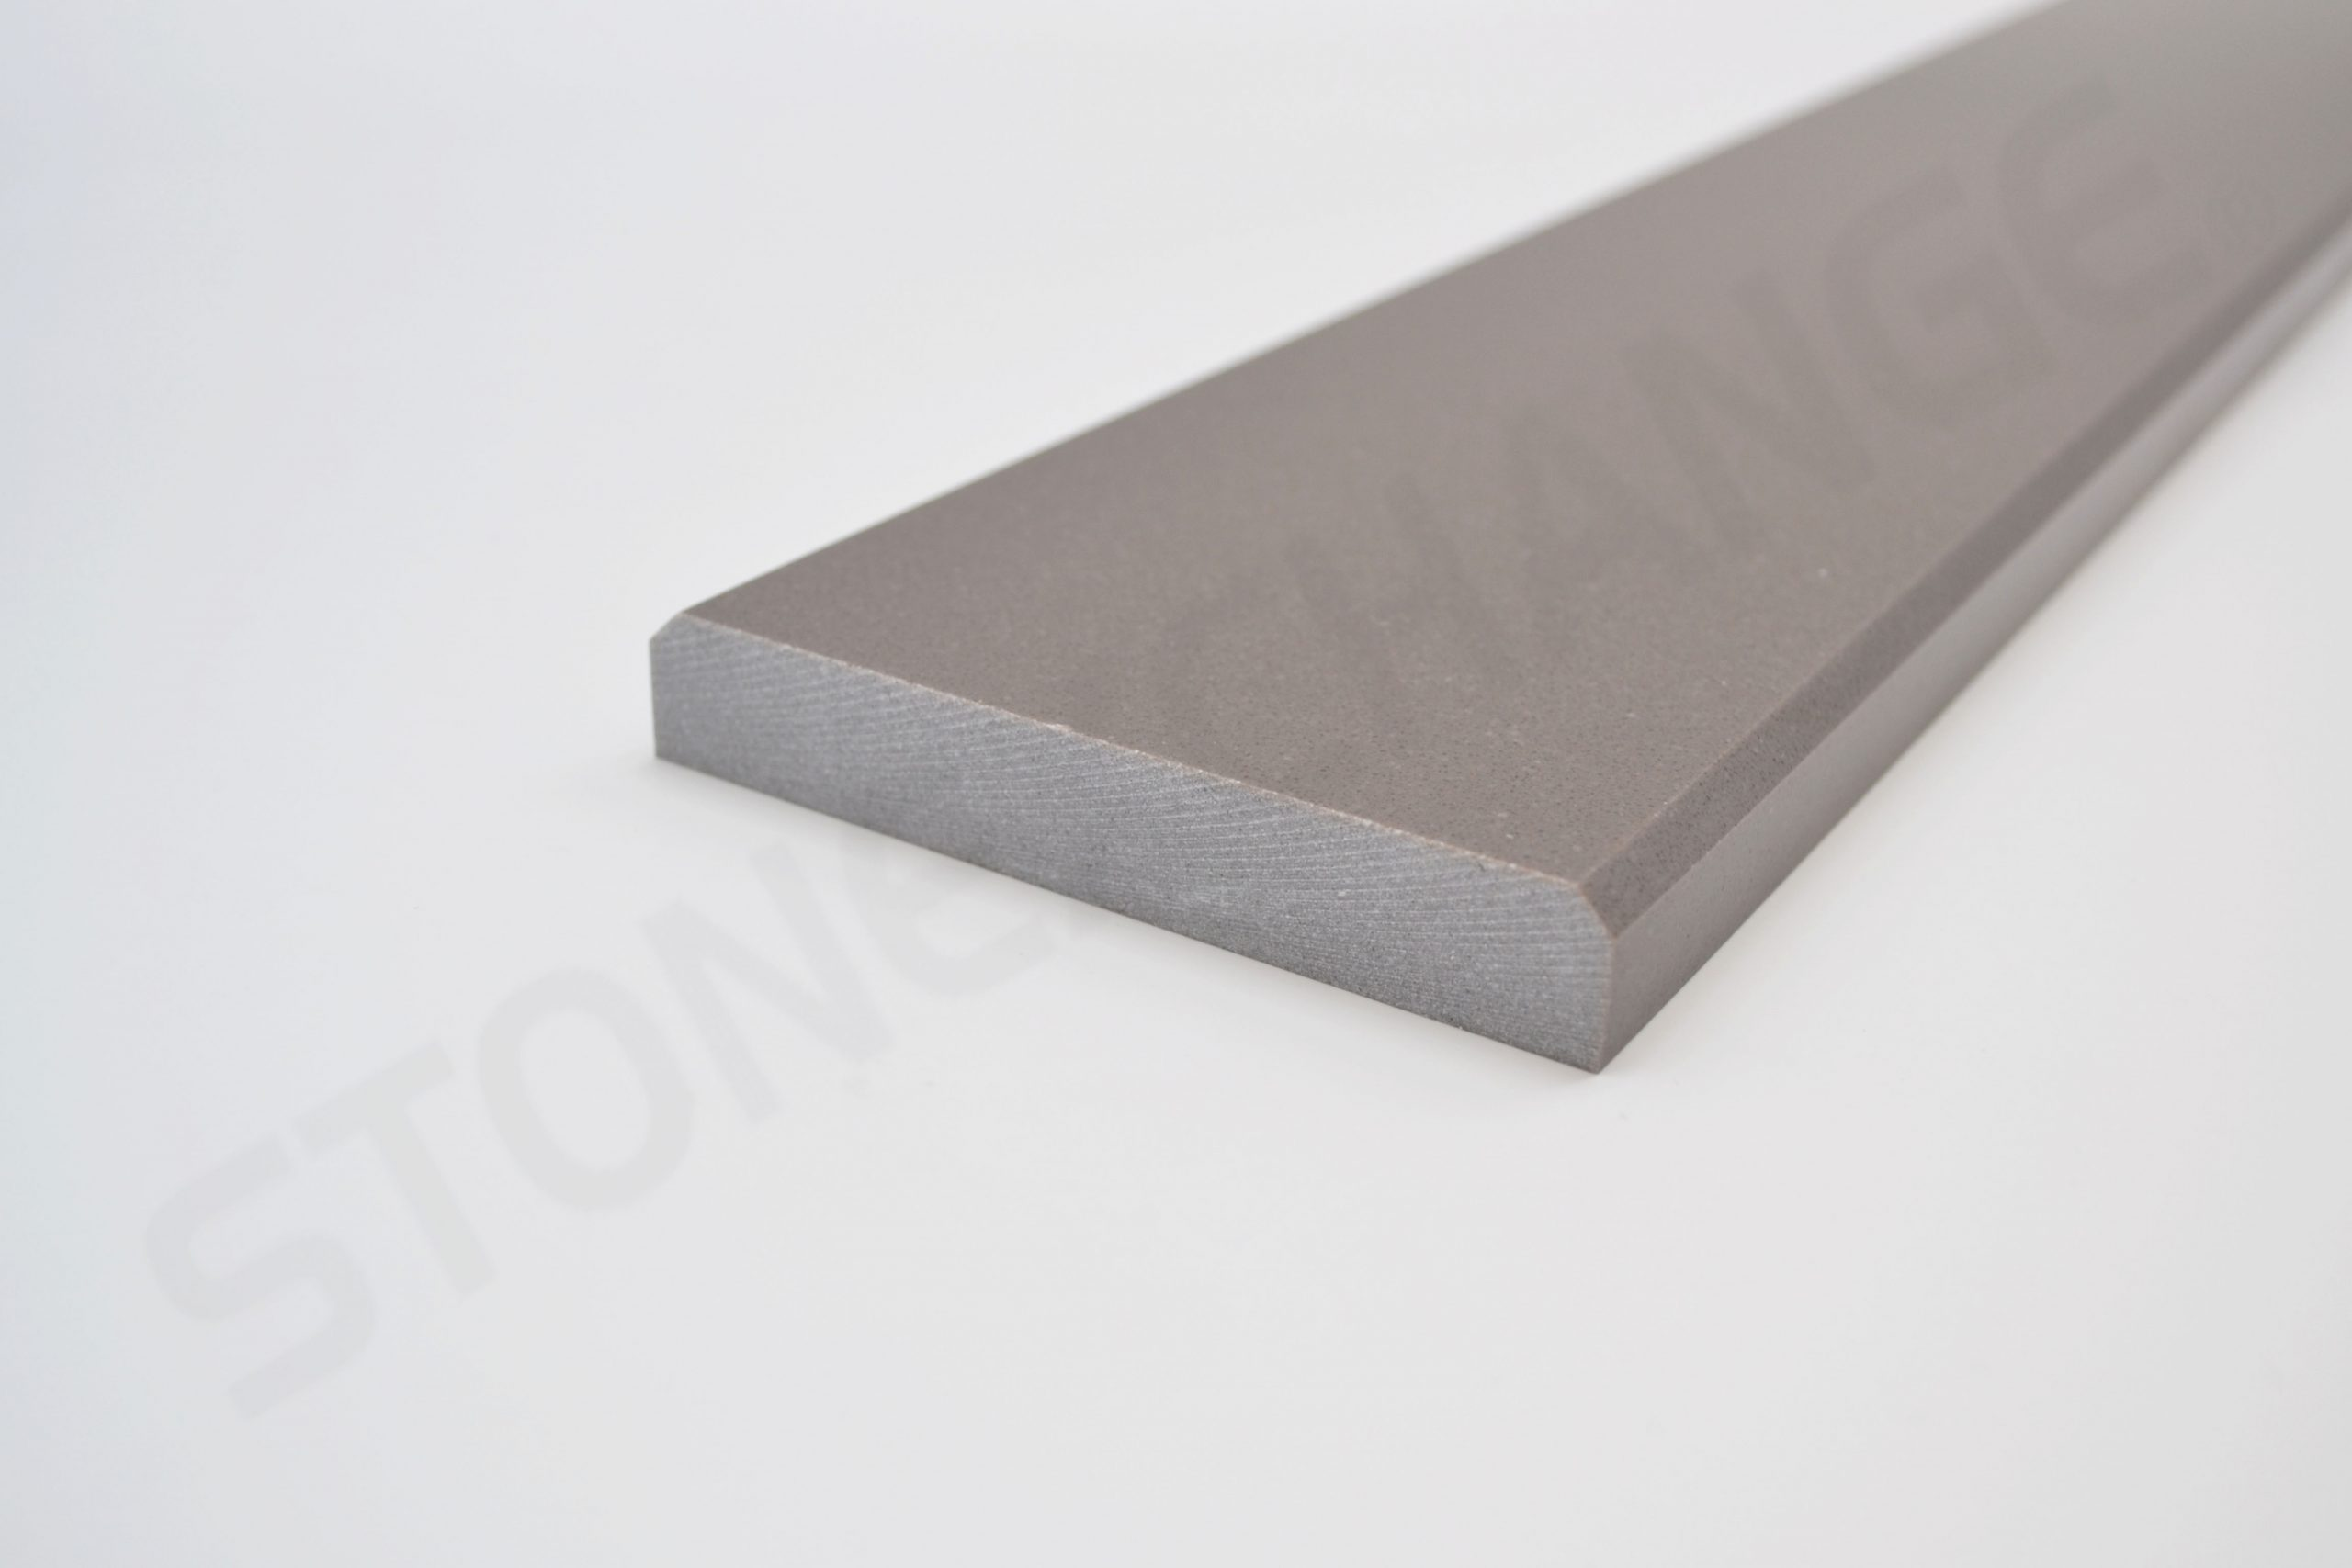 Concrete GrayEngineered Stone Double Standard Bevel Threshold 4x36 Close up